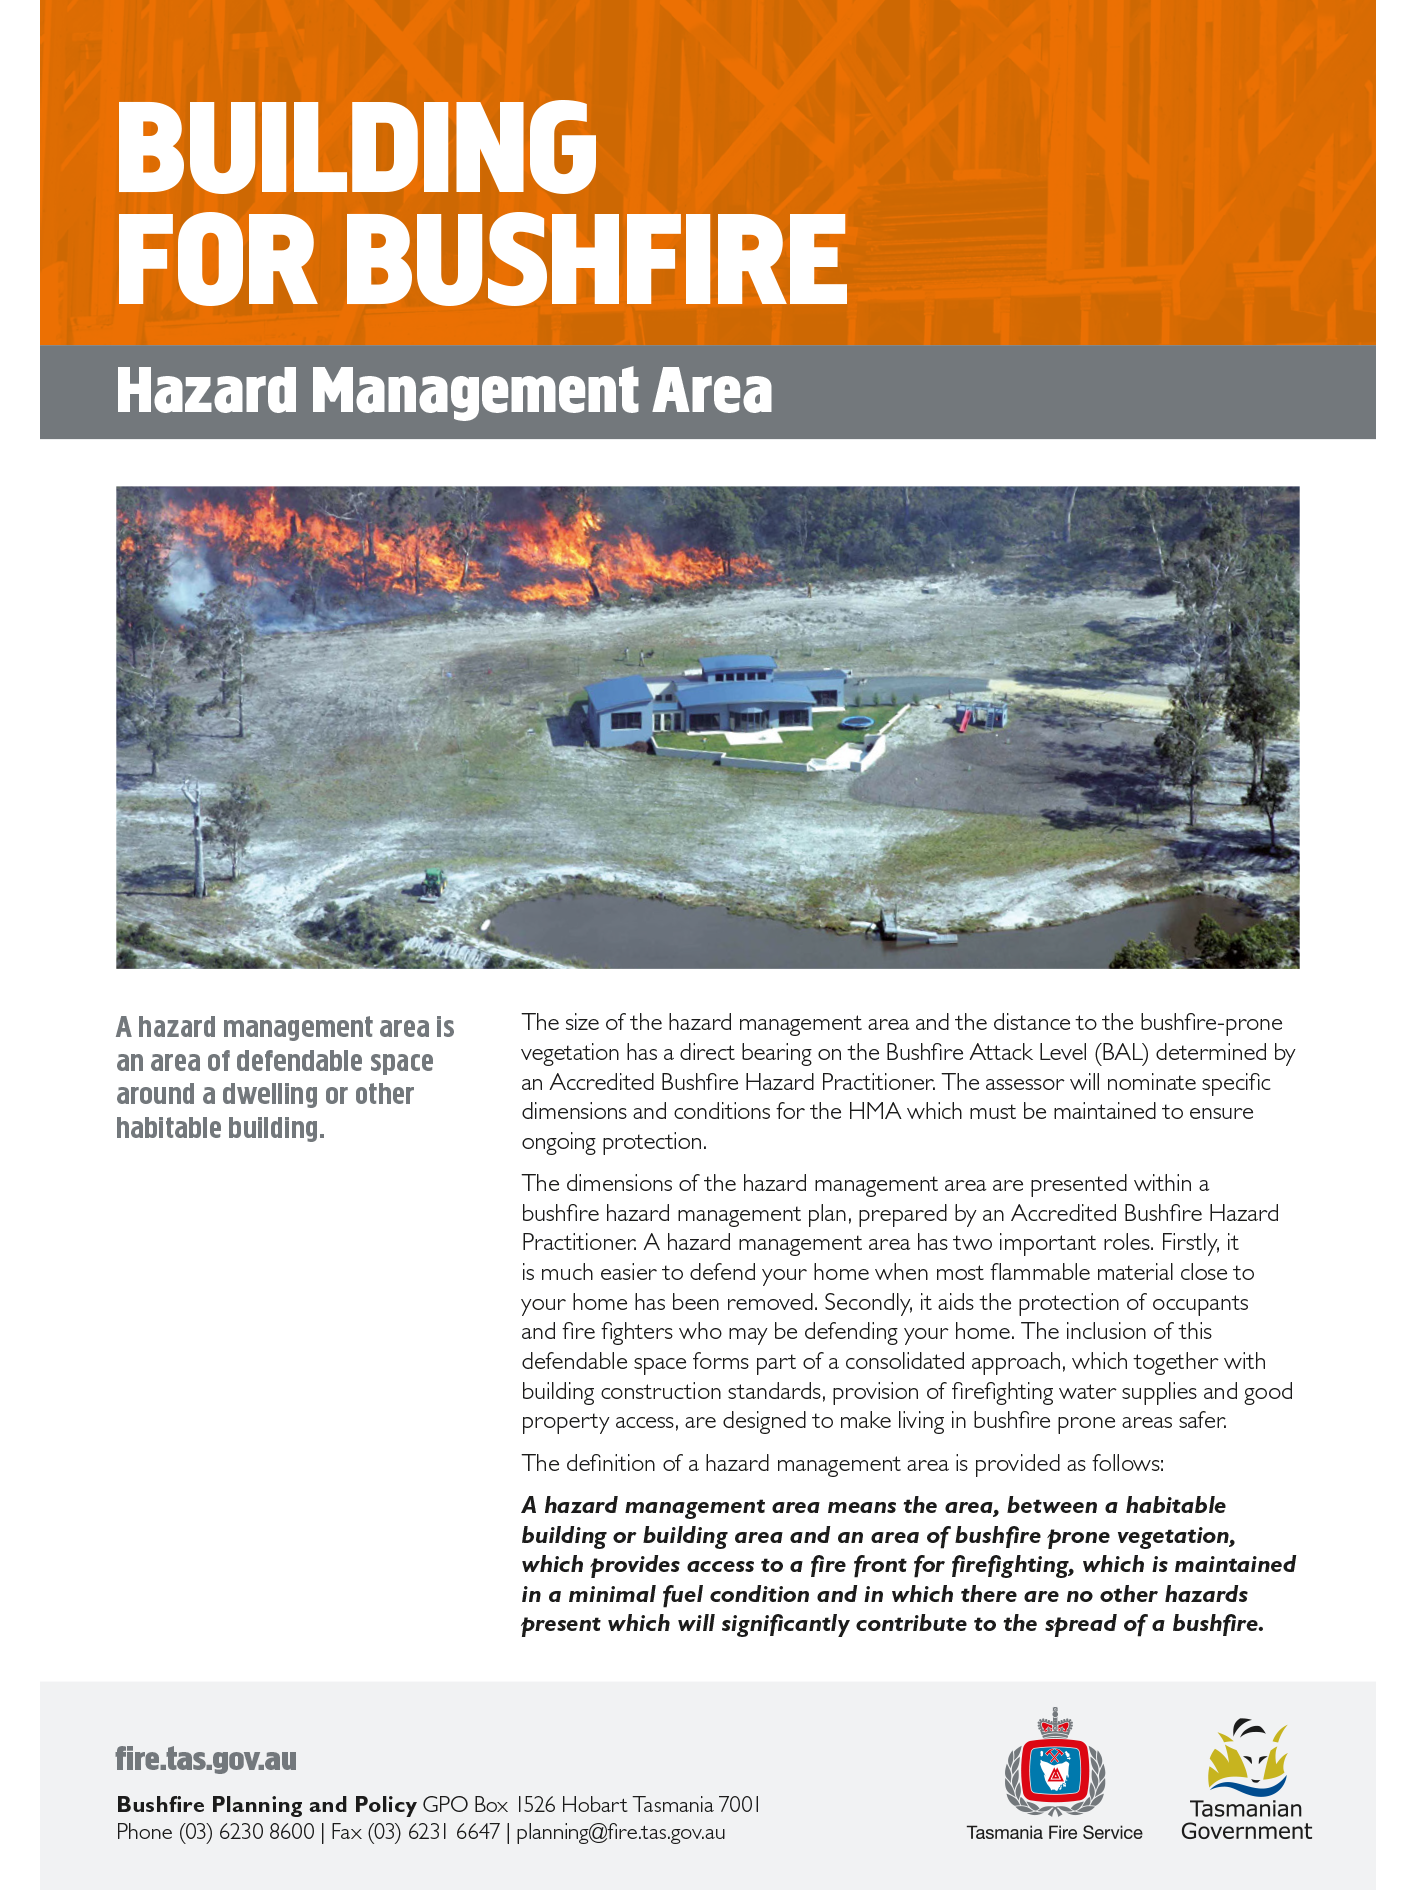 how to prepare my home to survive a bushfire